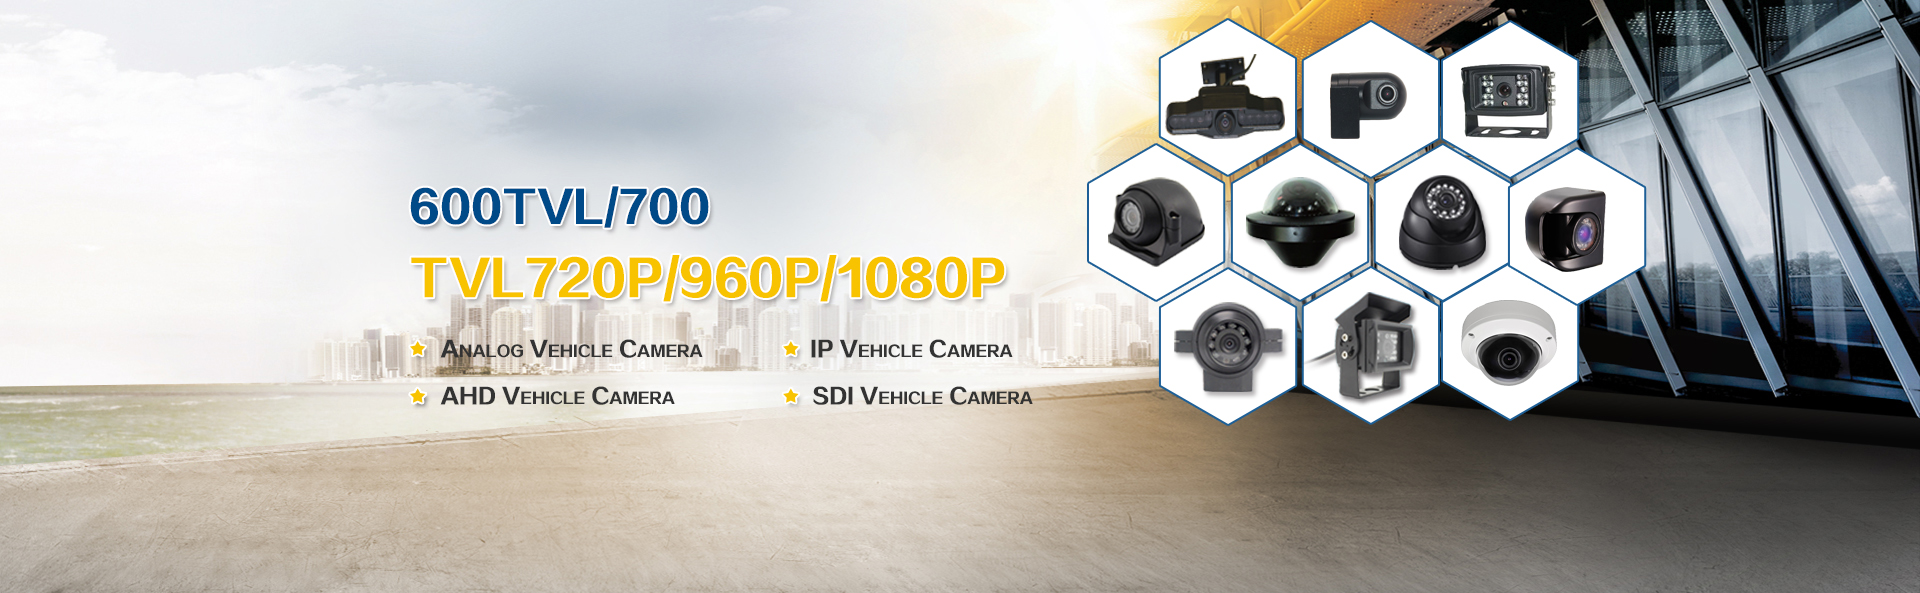 1080P 720P 700TVL AHD IP ANALOG CAR BUS VEHICLE CAMERAS